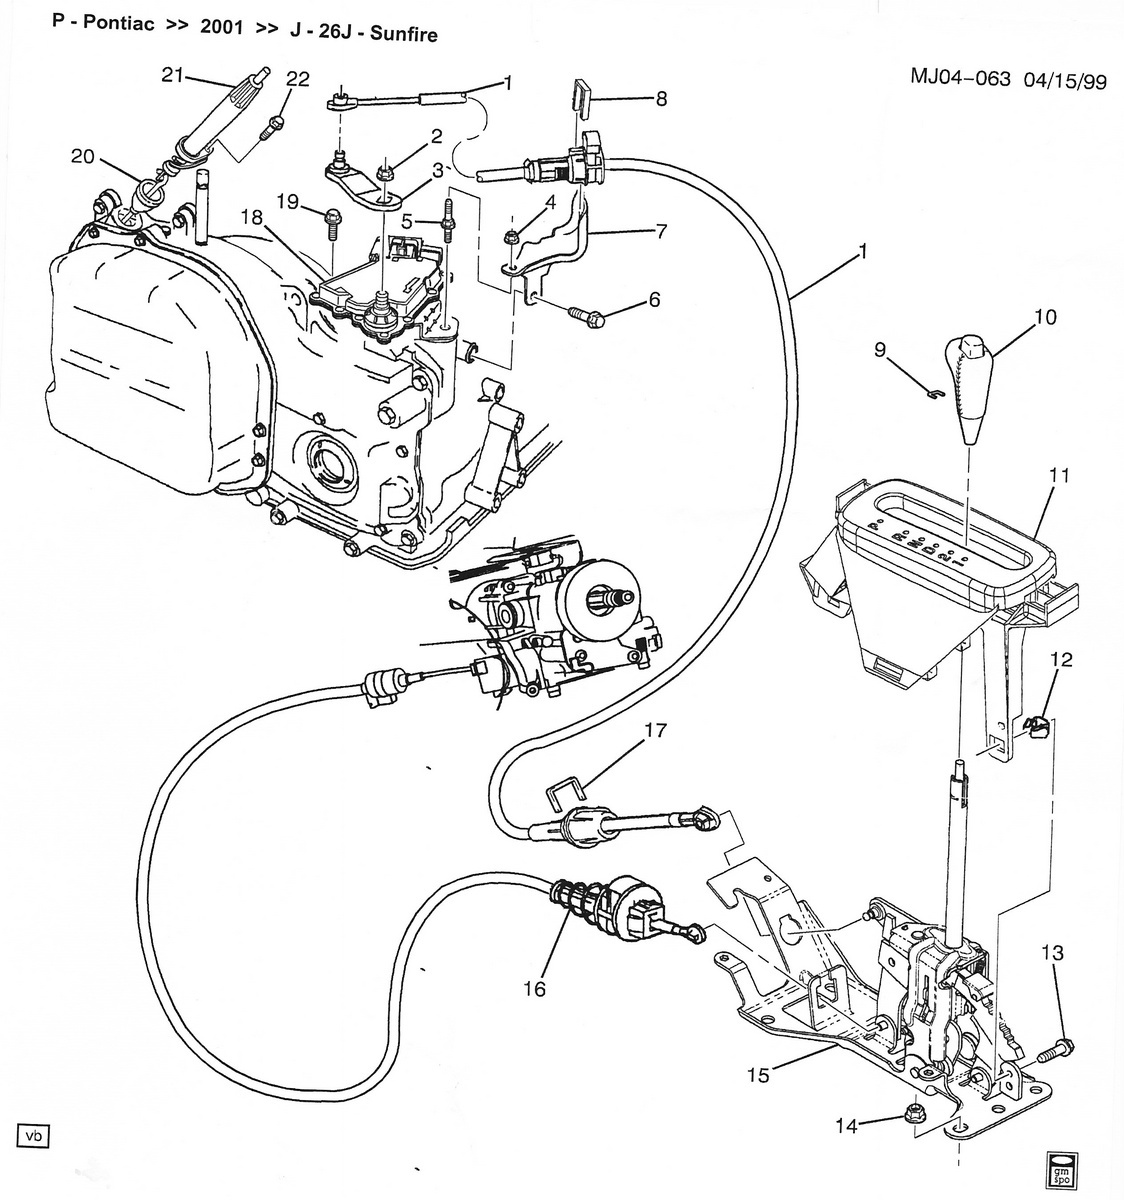 97 chevy cavalier manual transmission diagram